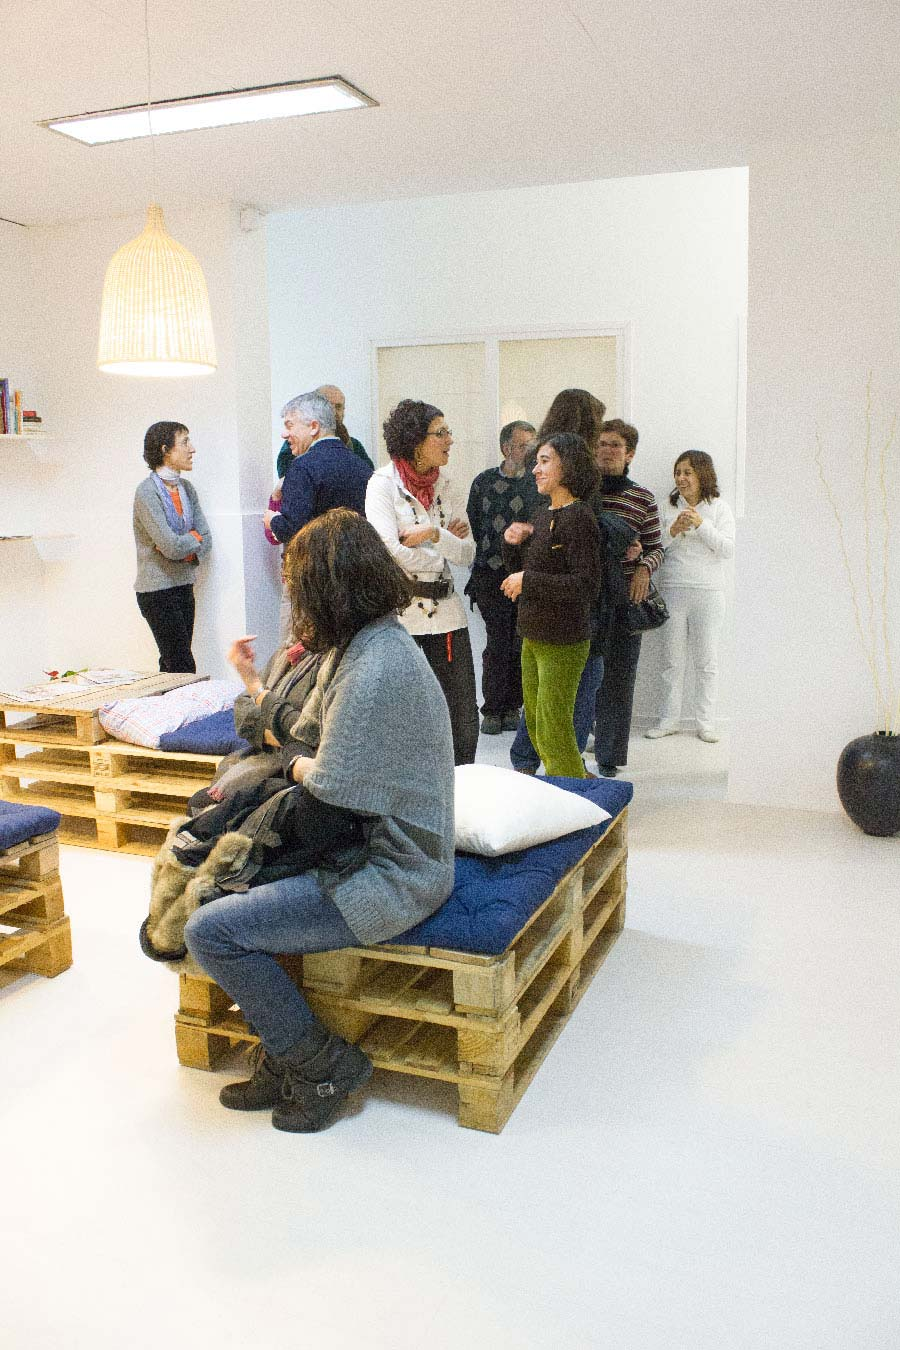 People enjoying and talking in the new meeting space of the yoga center